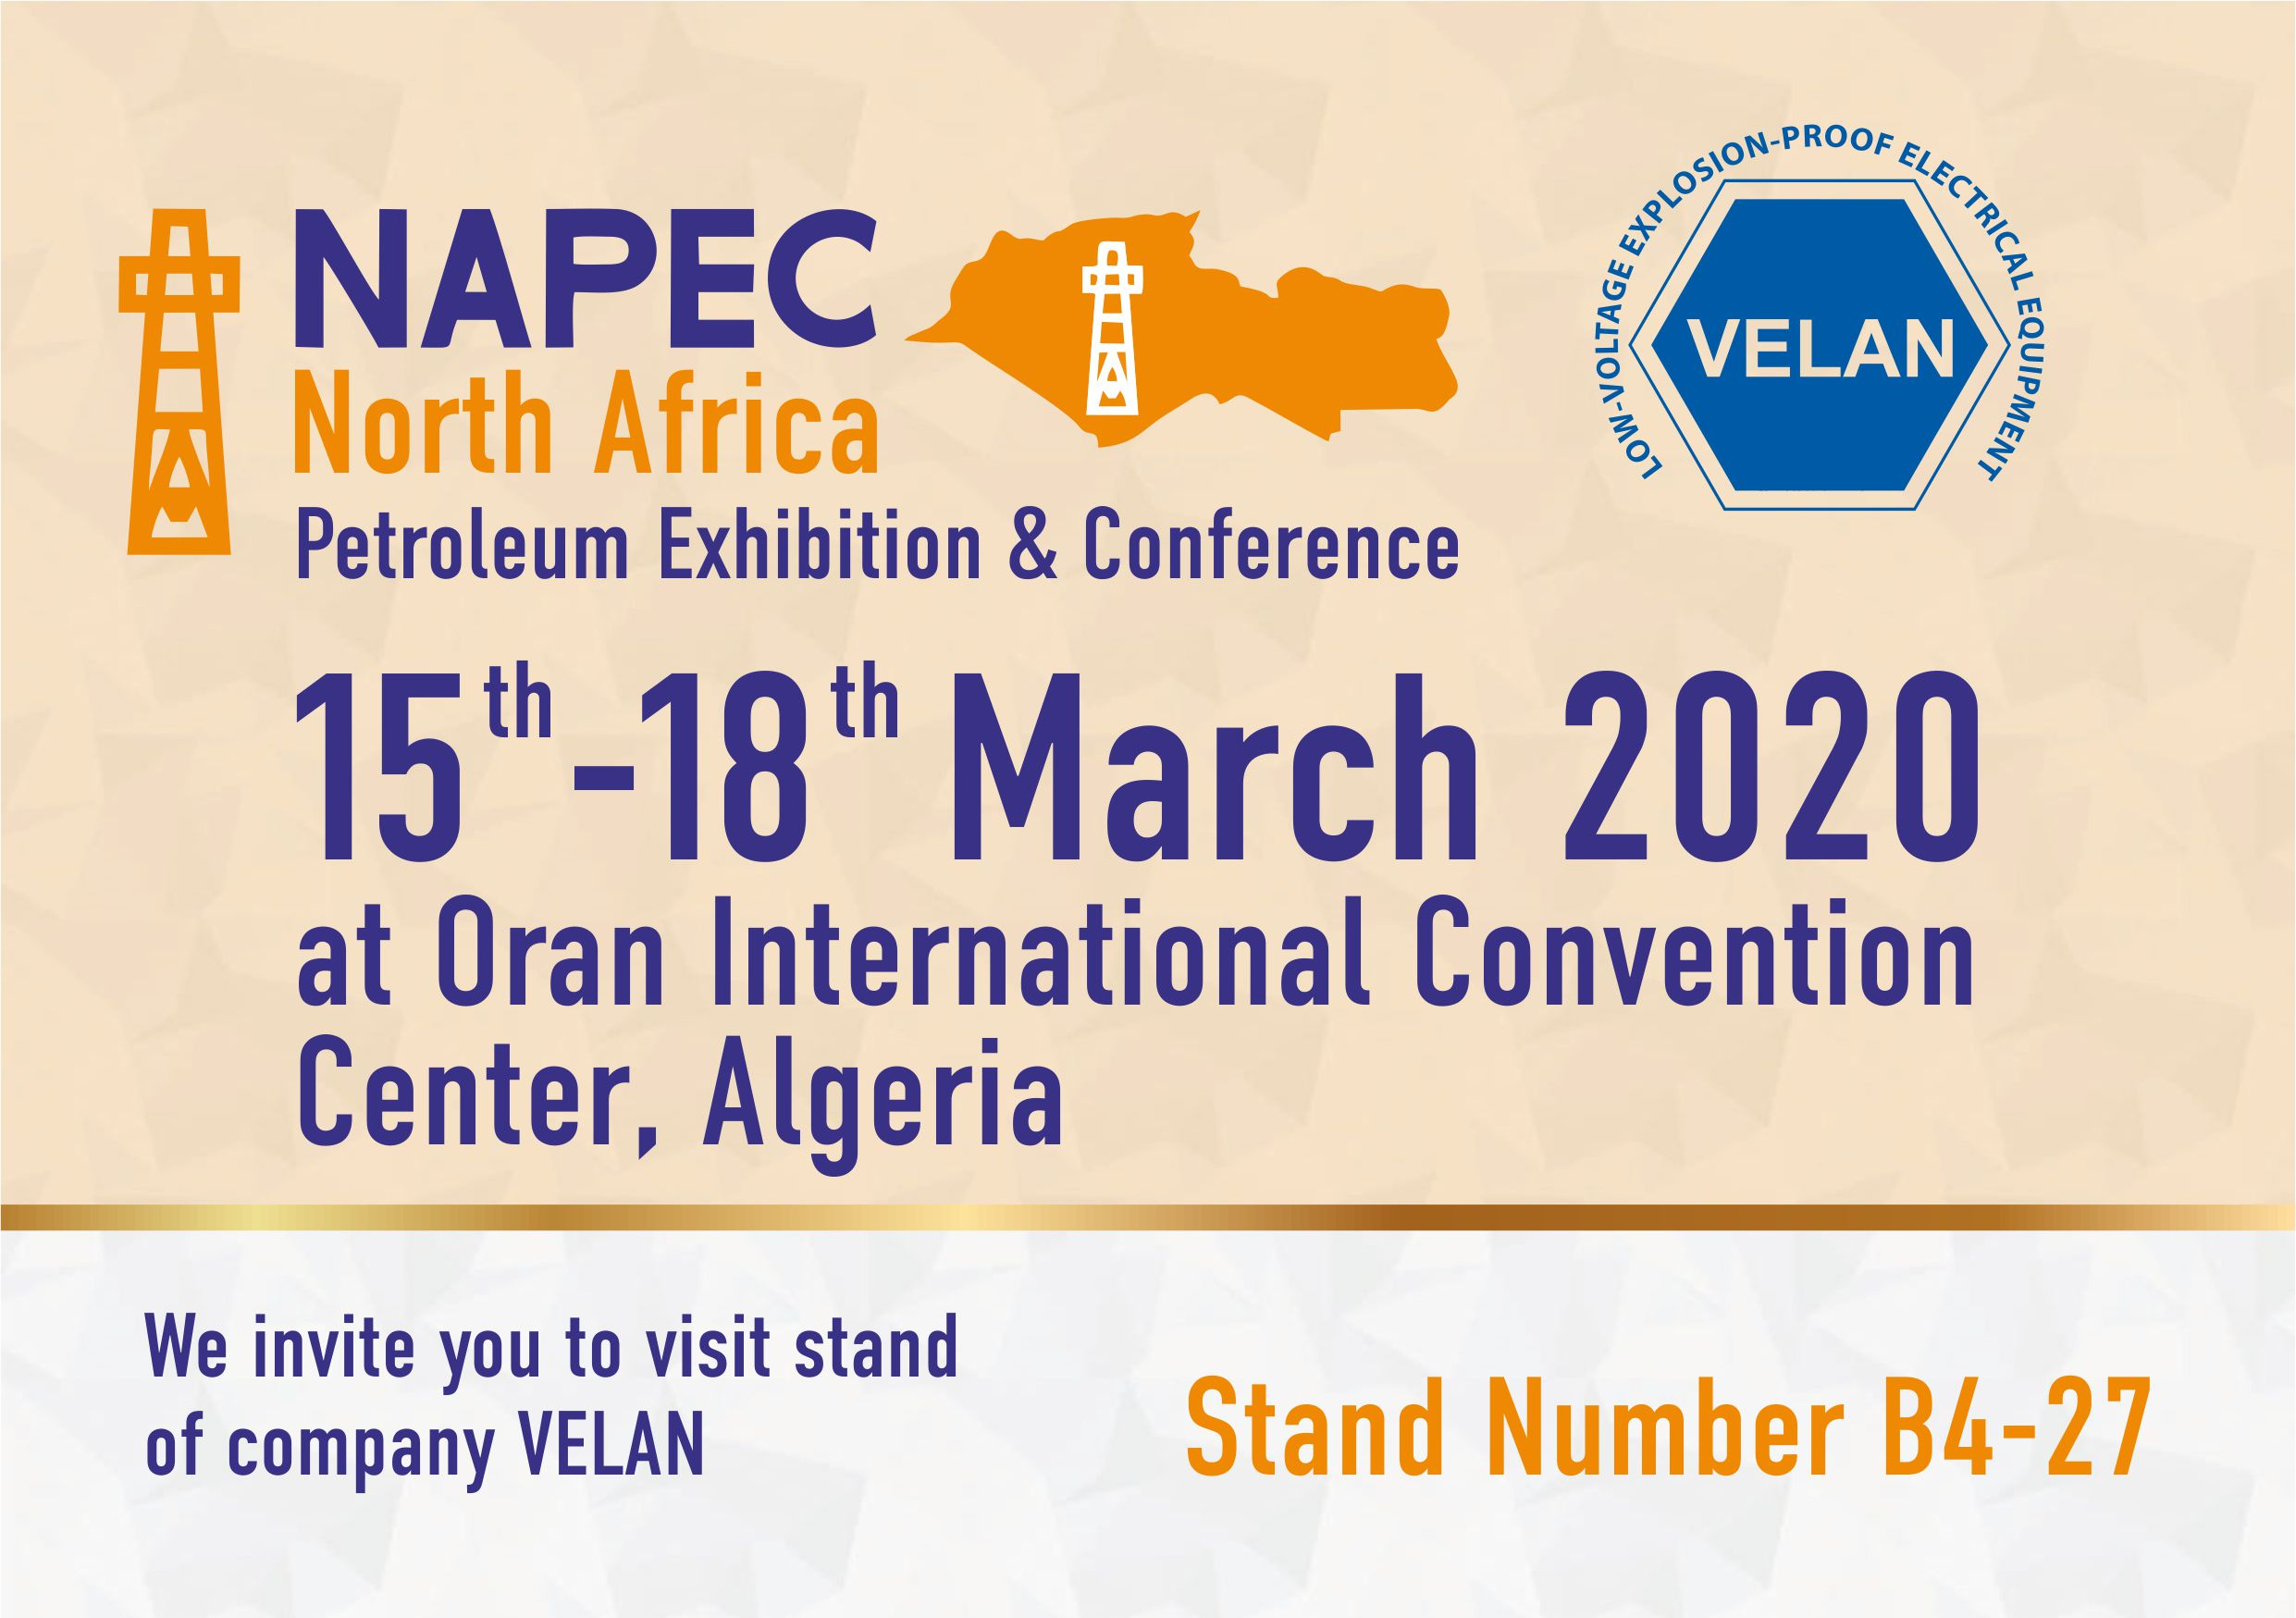 NAPEC 2020 - North Africa Petroleum Exhibition & Conference, Alger, Oran.